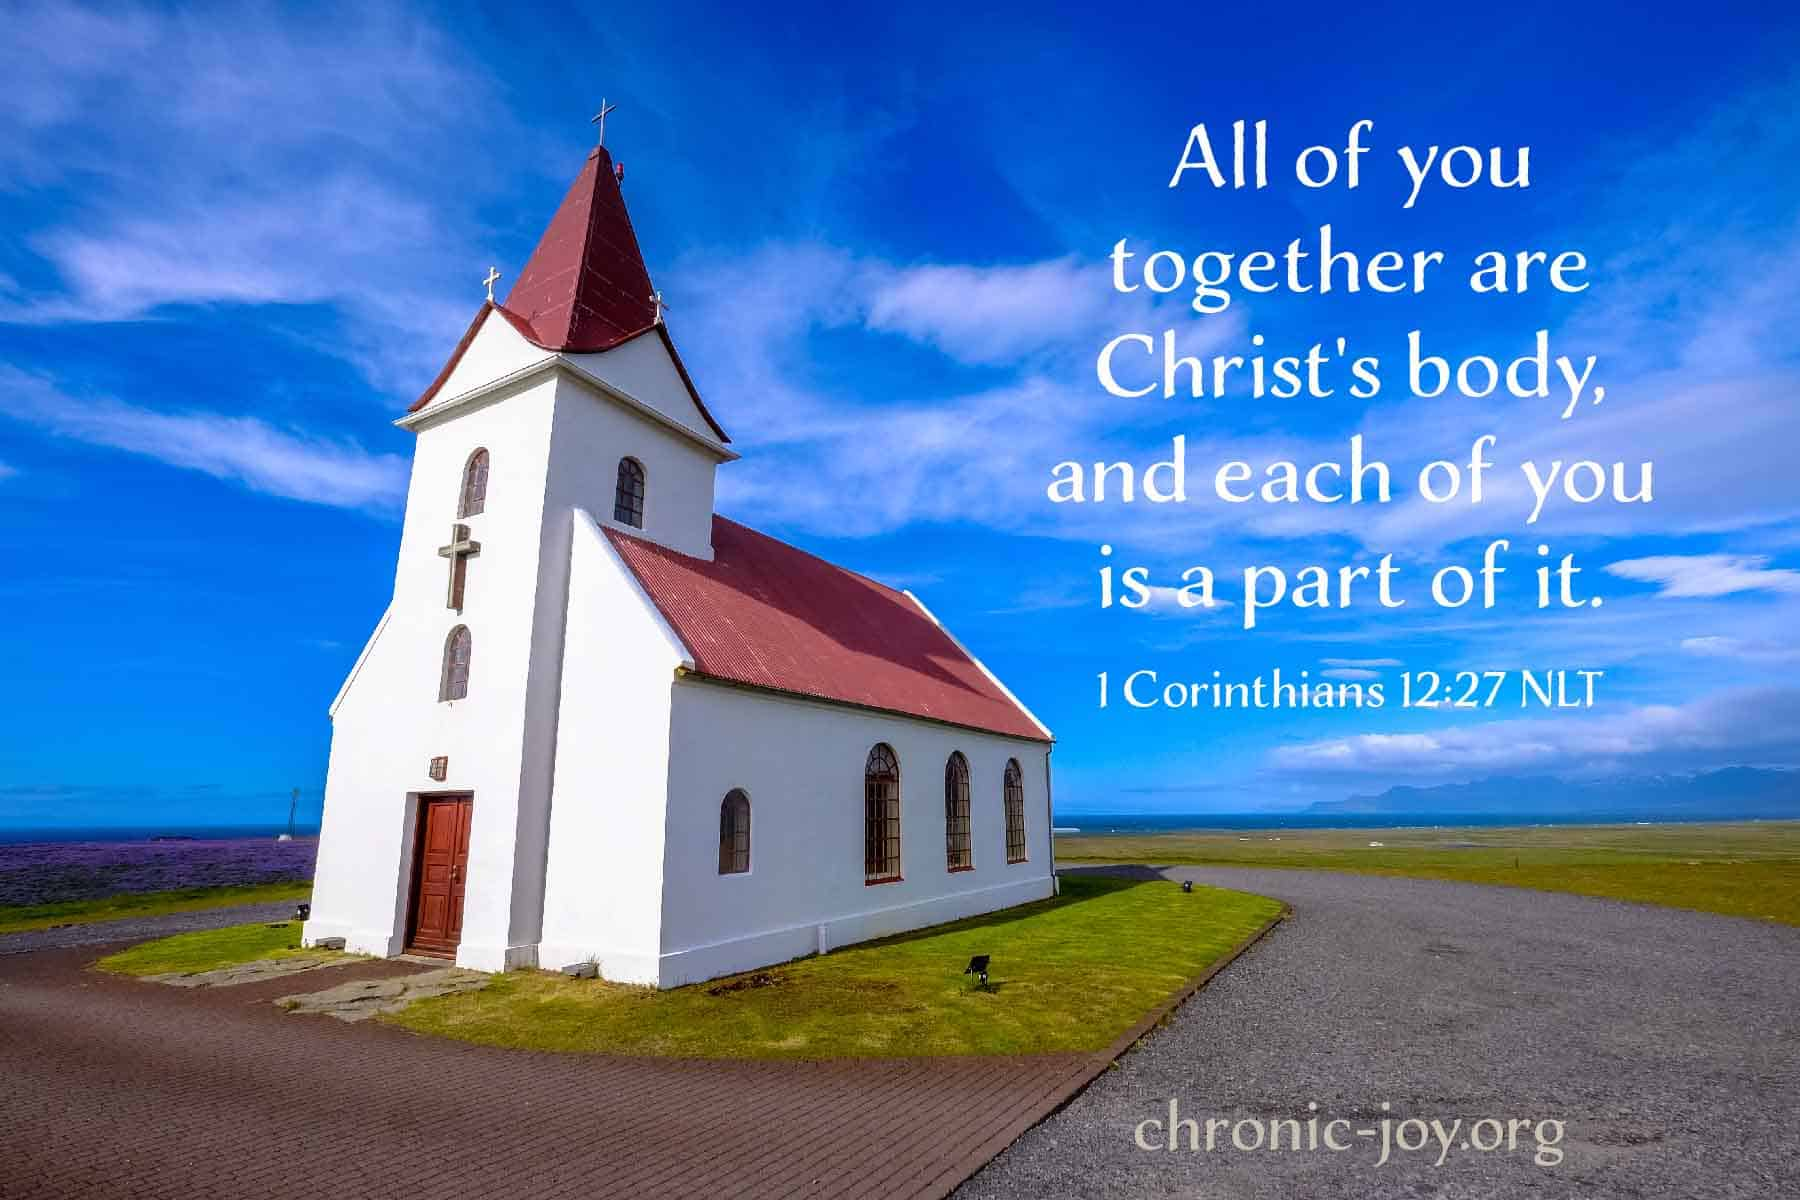 All of you together are Christ's body and each of you is a part of it. 1 Corinthians 12:27